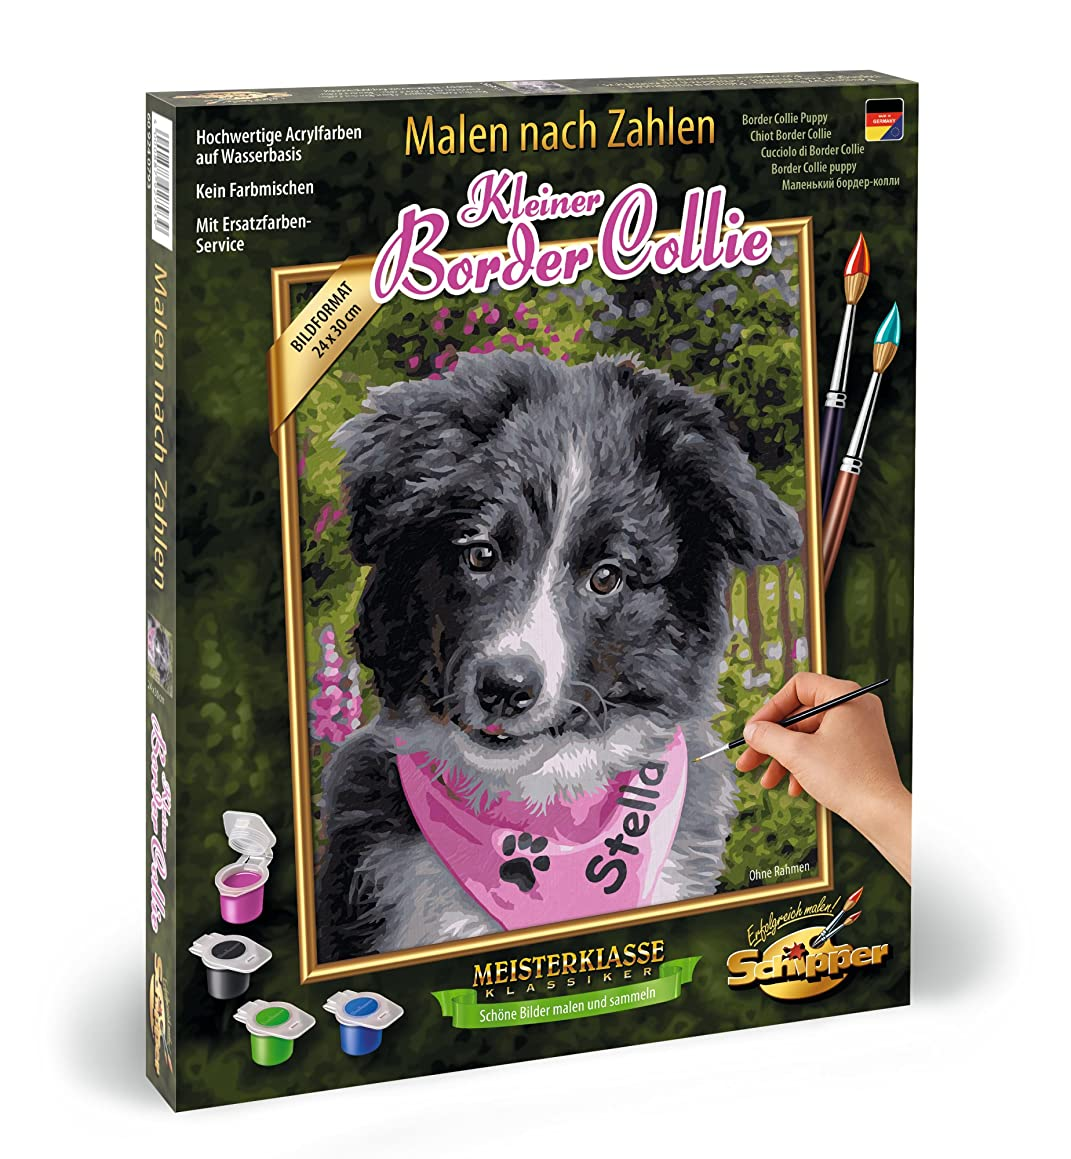 Noris Spiele Schipper Paint by Numbers – Small 609240793 Border Collie, 24 x 30 cm Assorted Colours